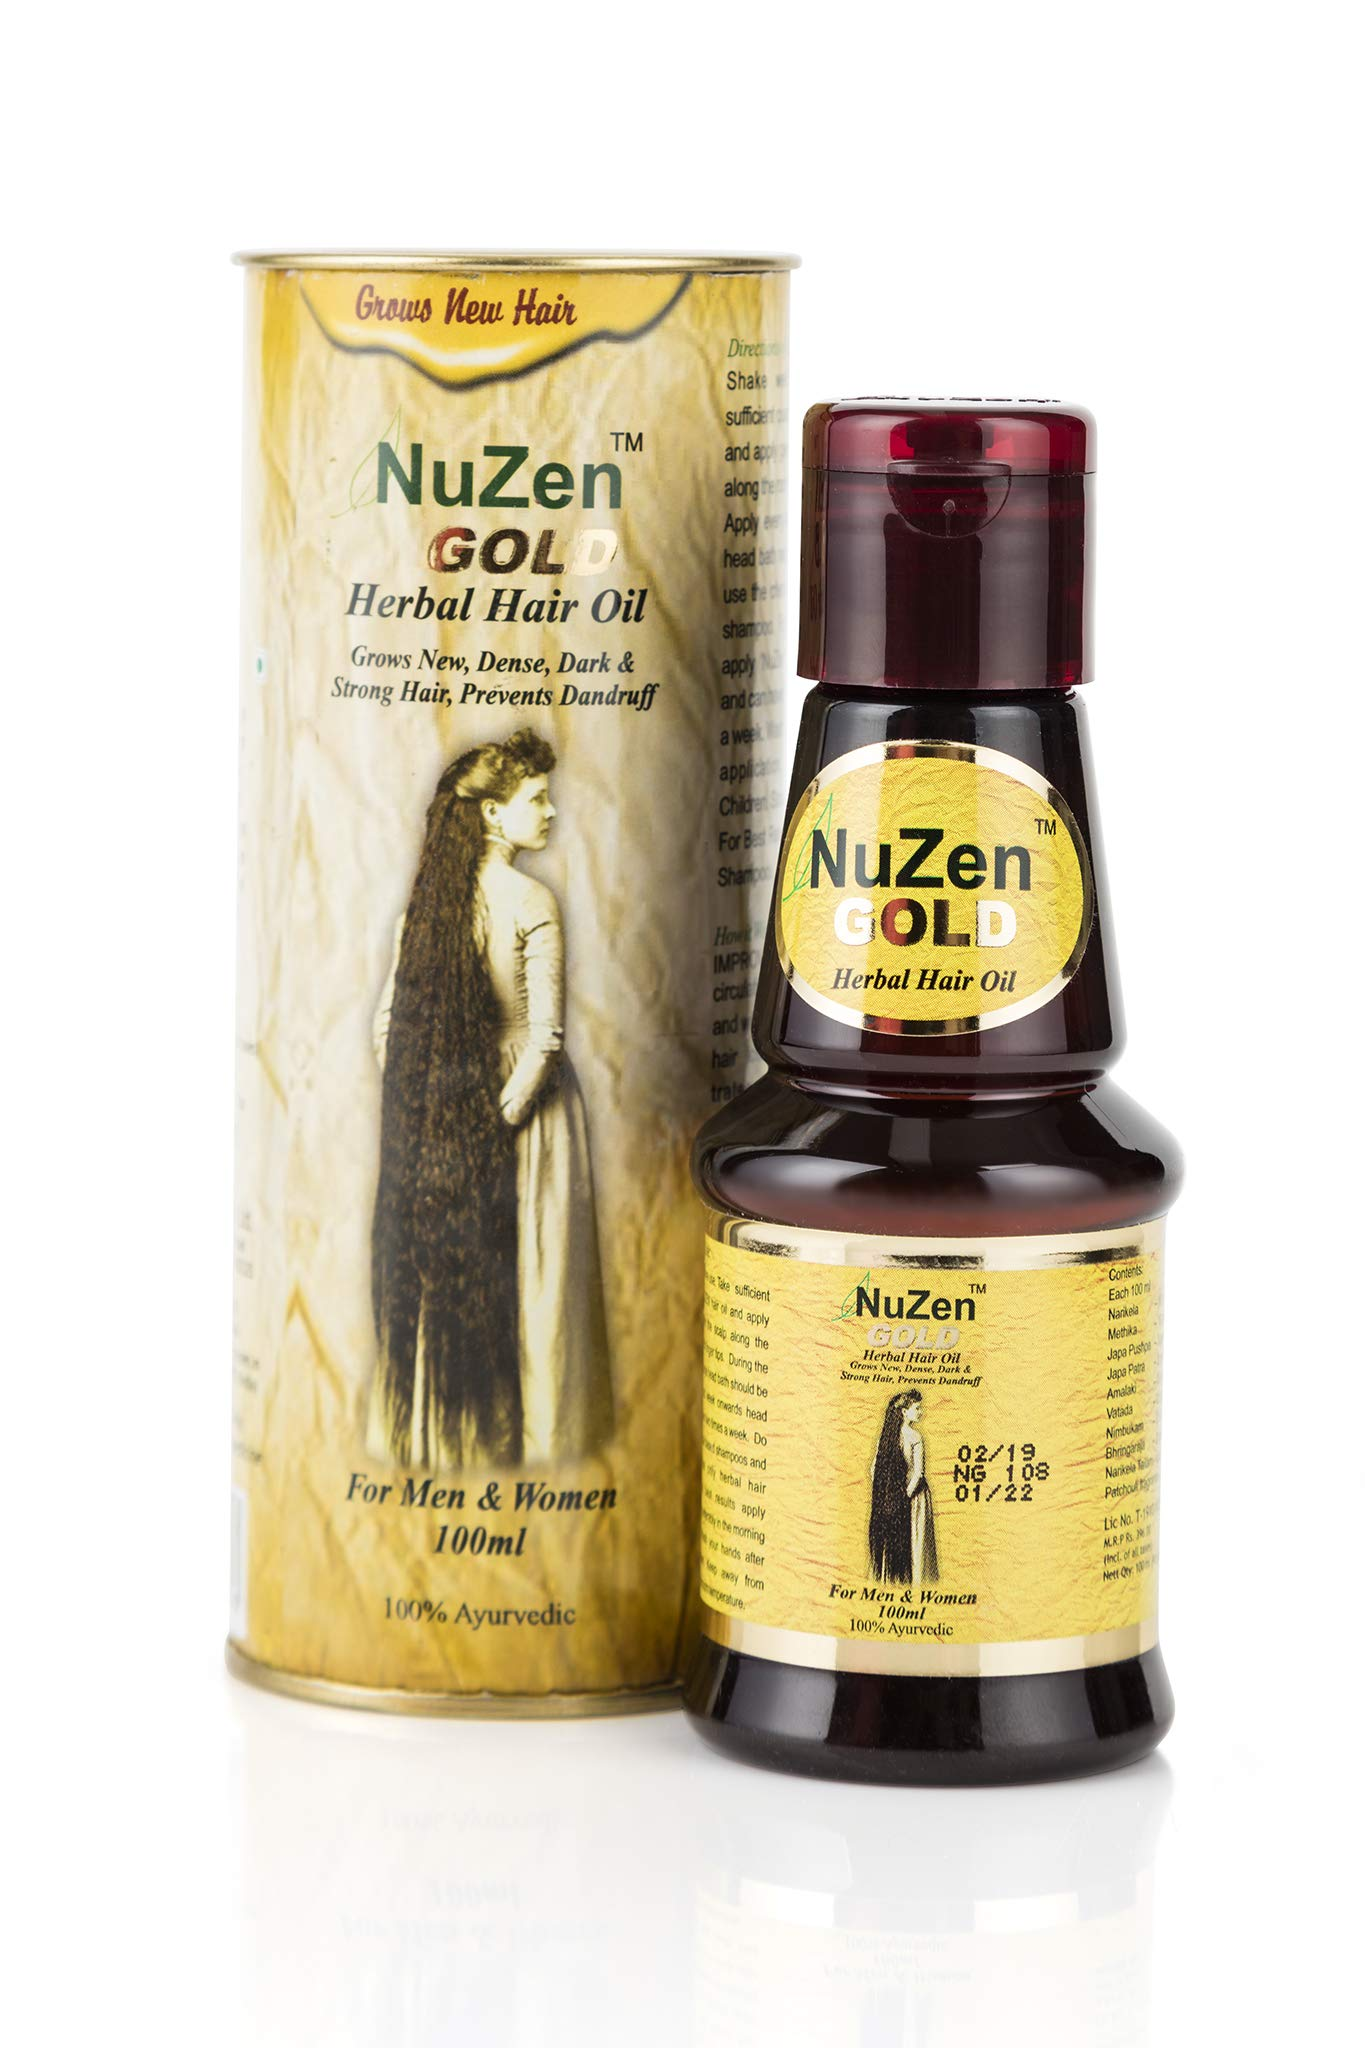 Nuzen Herbal Gold Hair Oil, 100ml